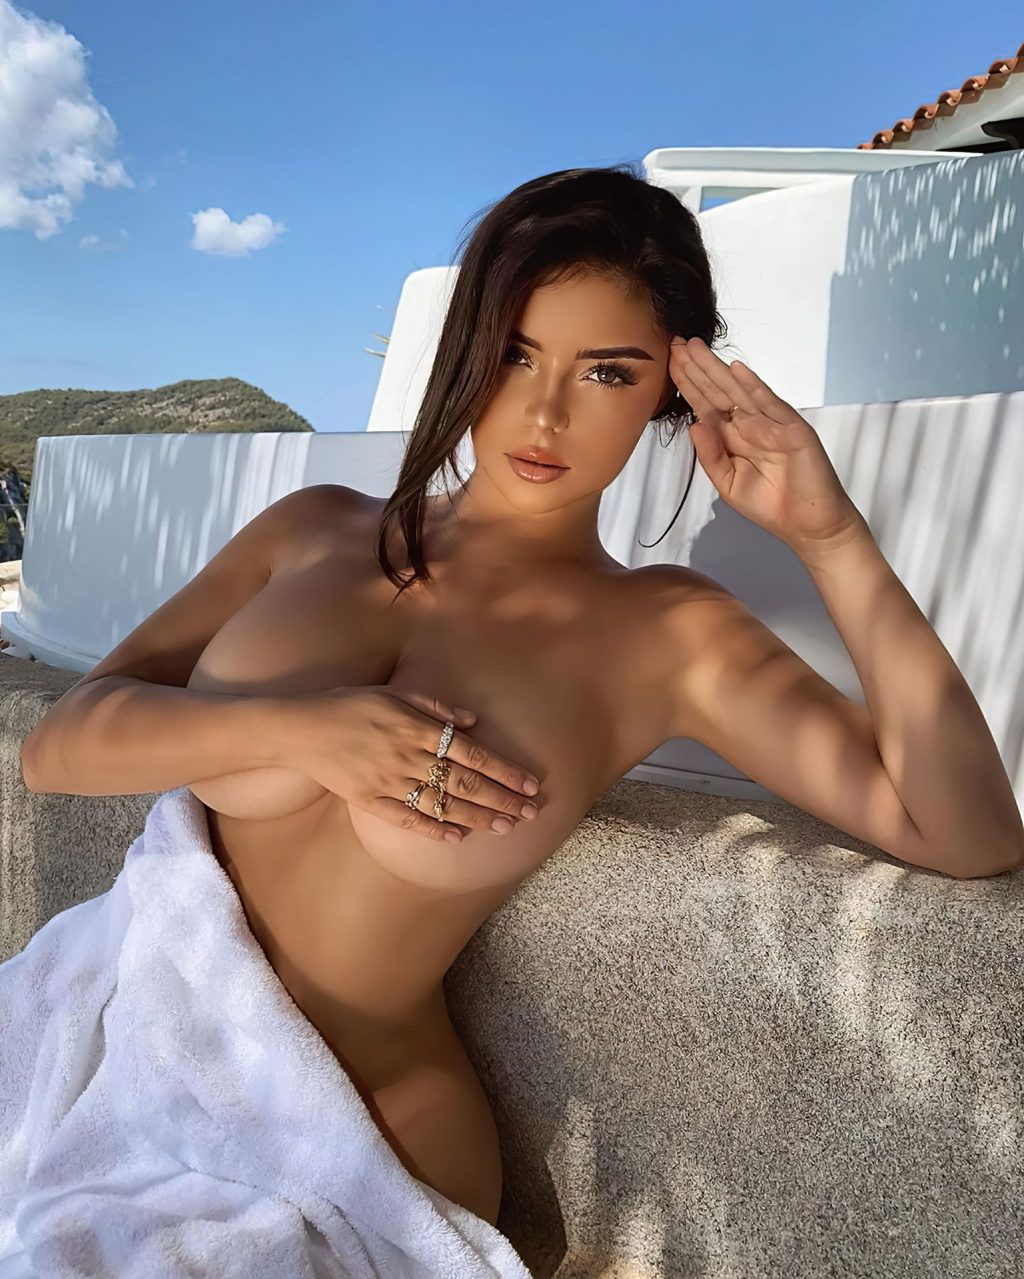 Demi Rose Topless Nude OnlyFans Sexy Video Leak - Demi Rose Nude Topless OnlyFans Teasing Big Ass